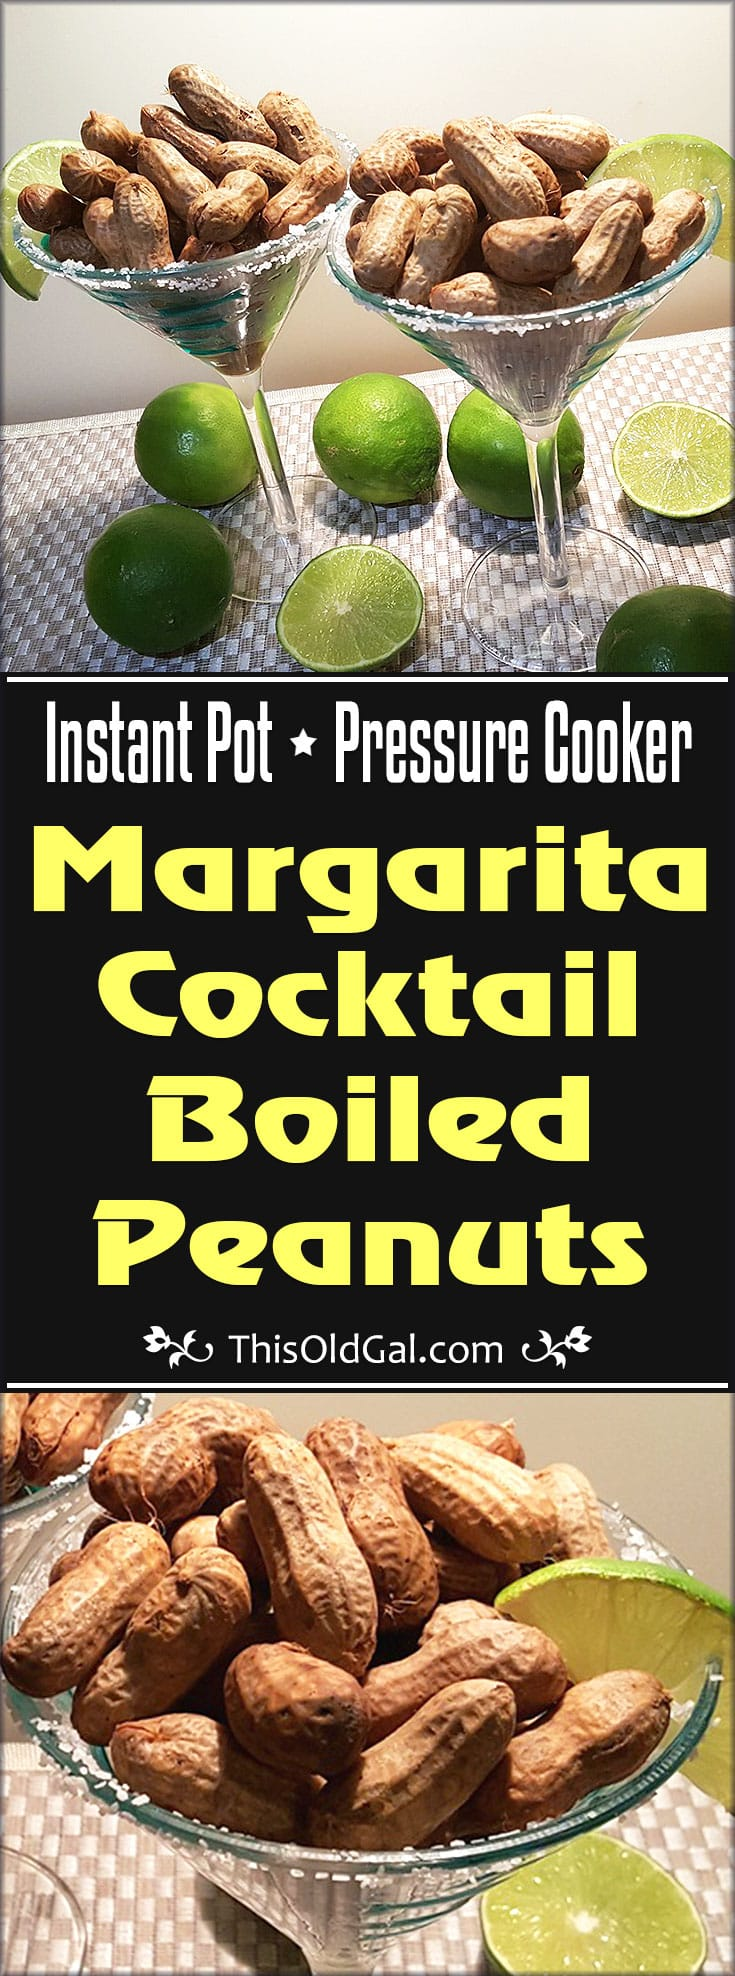 Pressure Cooker Margarita Cocktail Boiled Peanuts